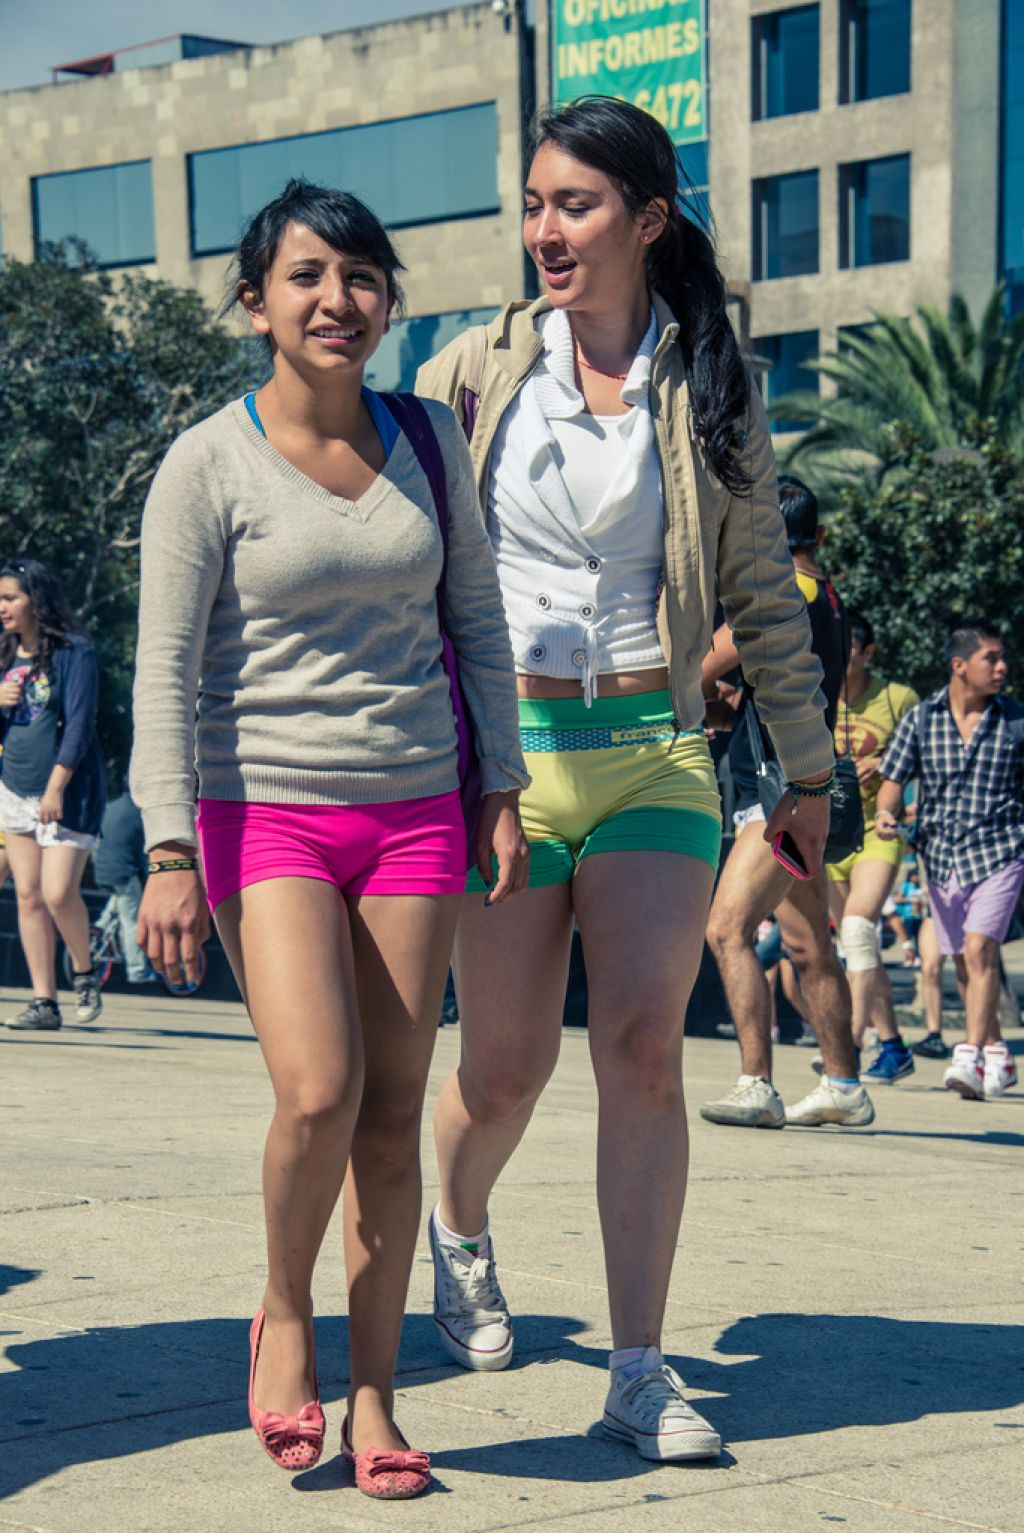 no pants11 No Pants Day in Mexico City